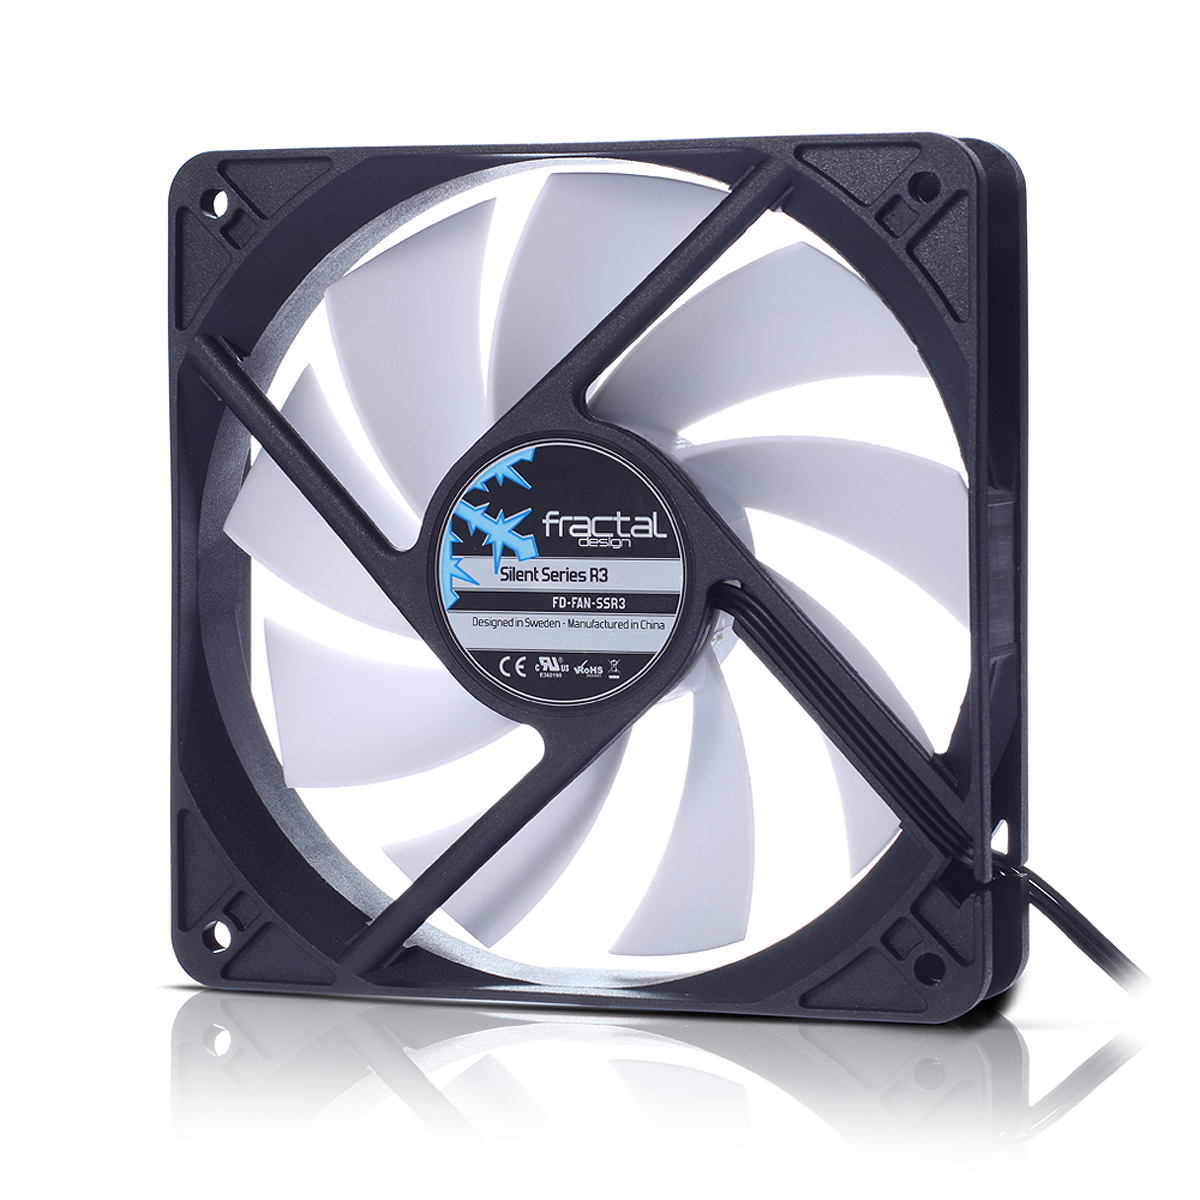 FD-FAN-SSR3-40-WT Fractal Design Silent Series R3 40mm Computer case Fan - Ent01